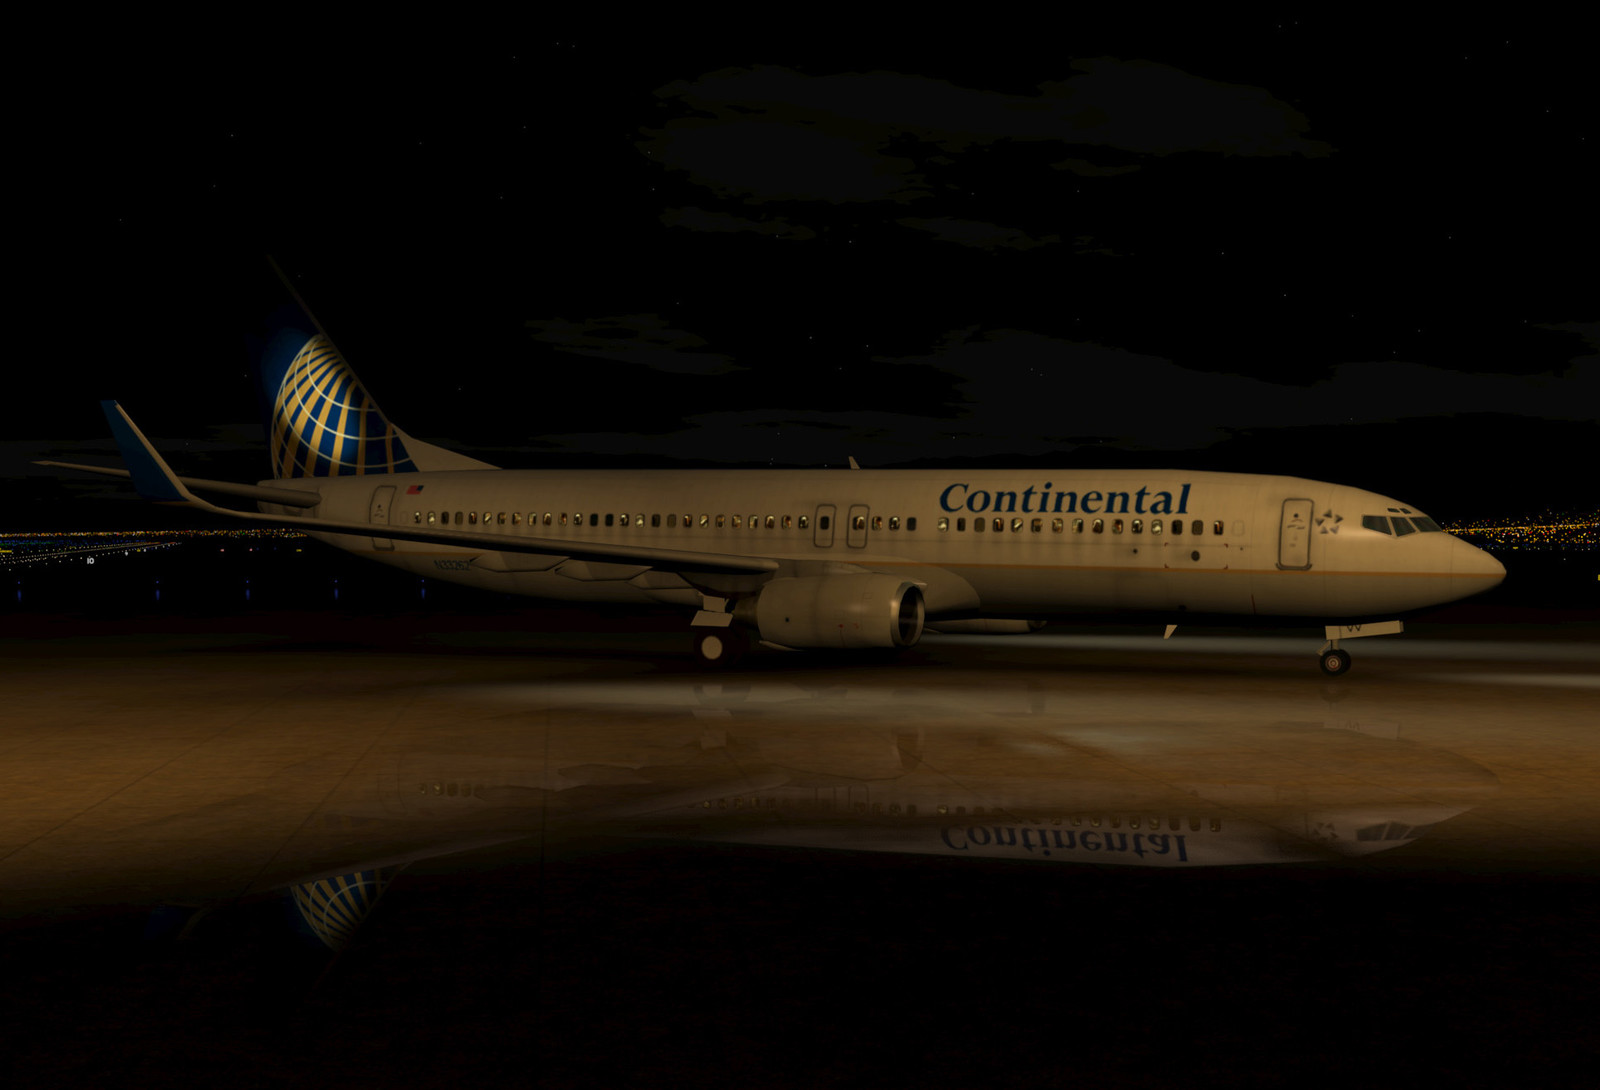 Continental (now United) 737 taxiing on a wet ramp